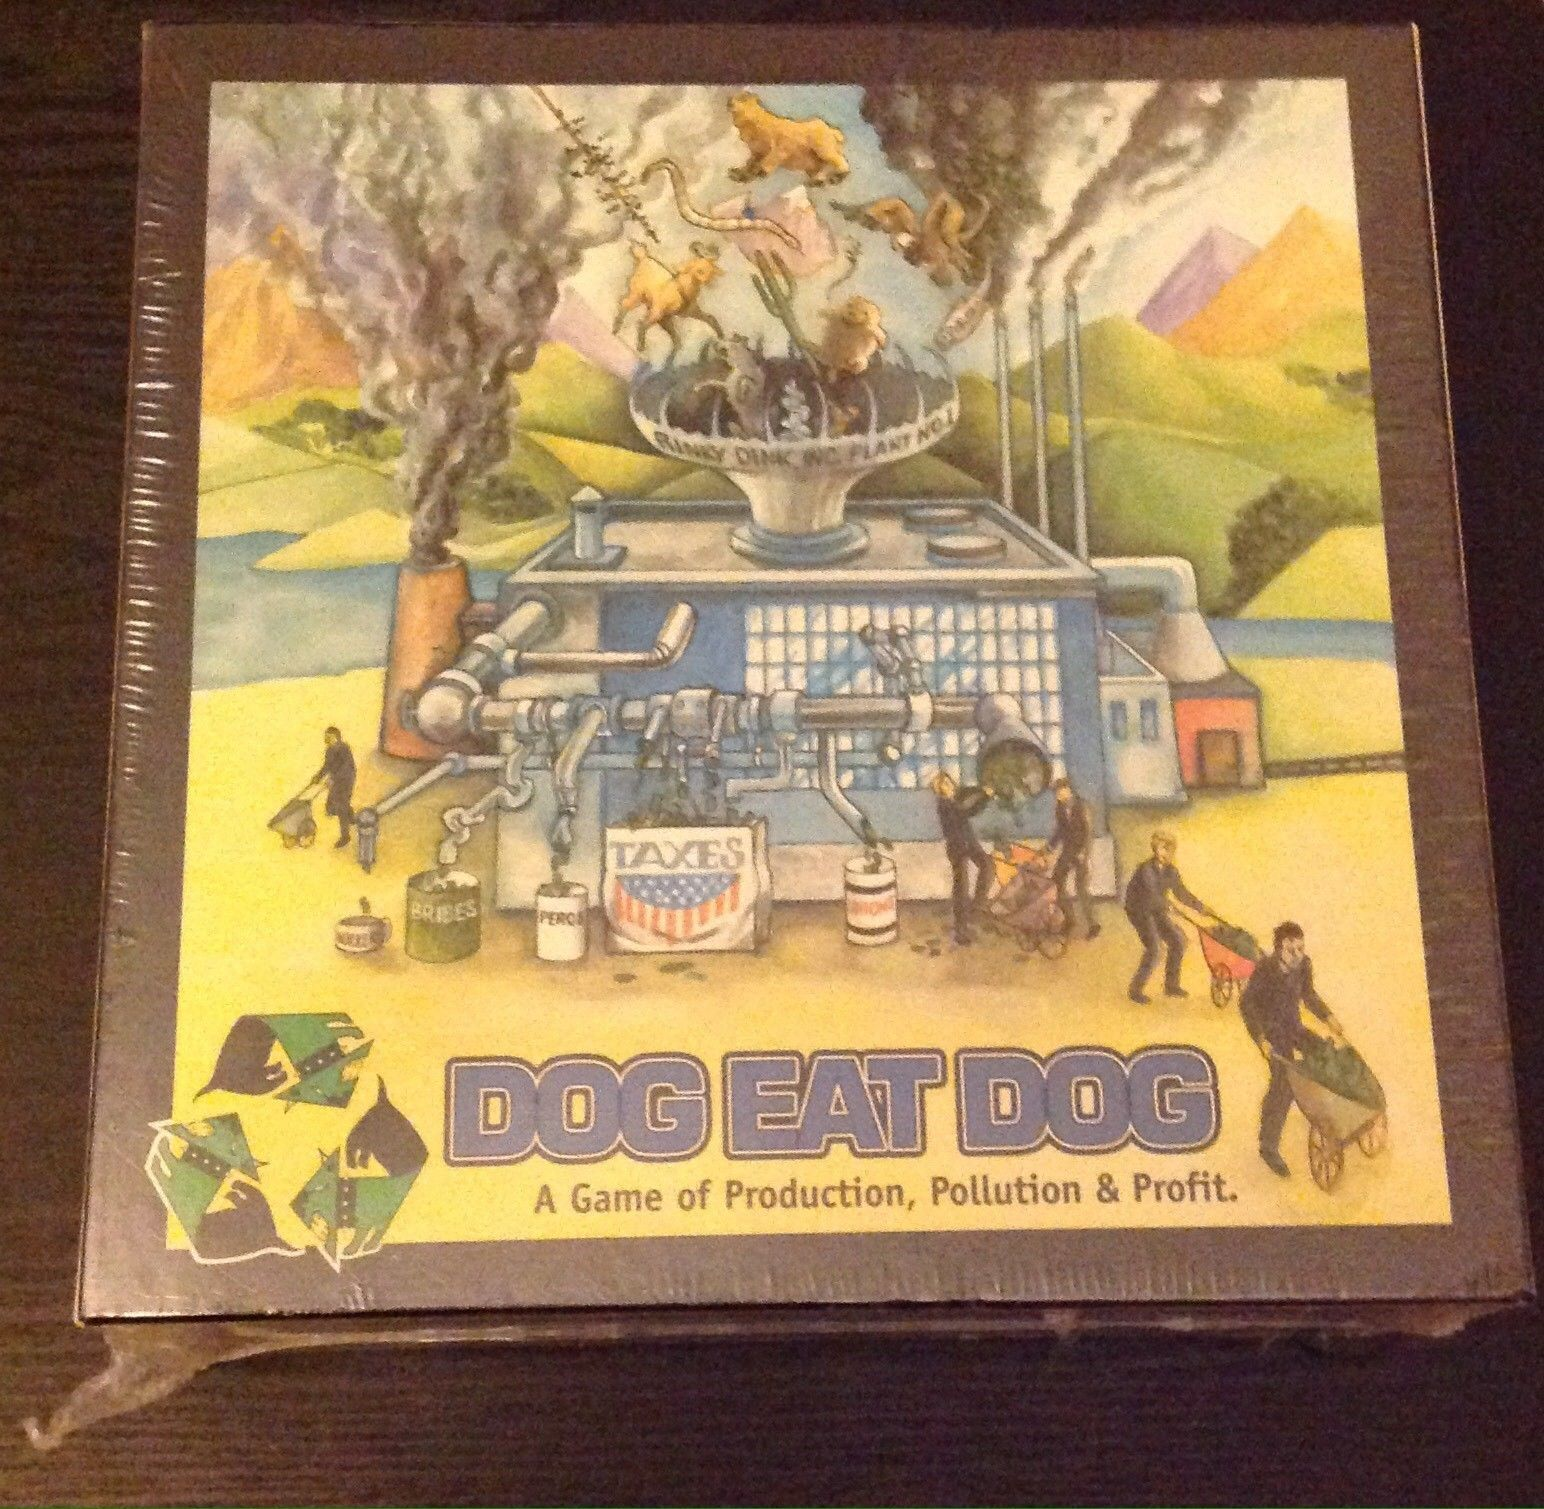 Brand New and Sealed Dog Eat Dog - Vintage game from 1999